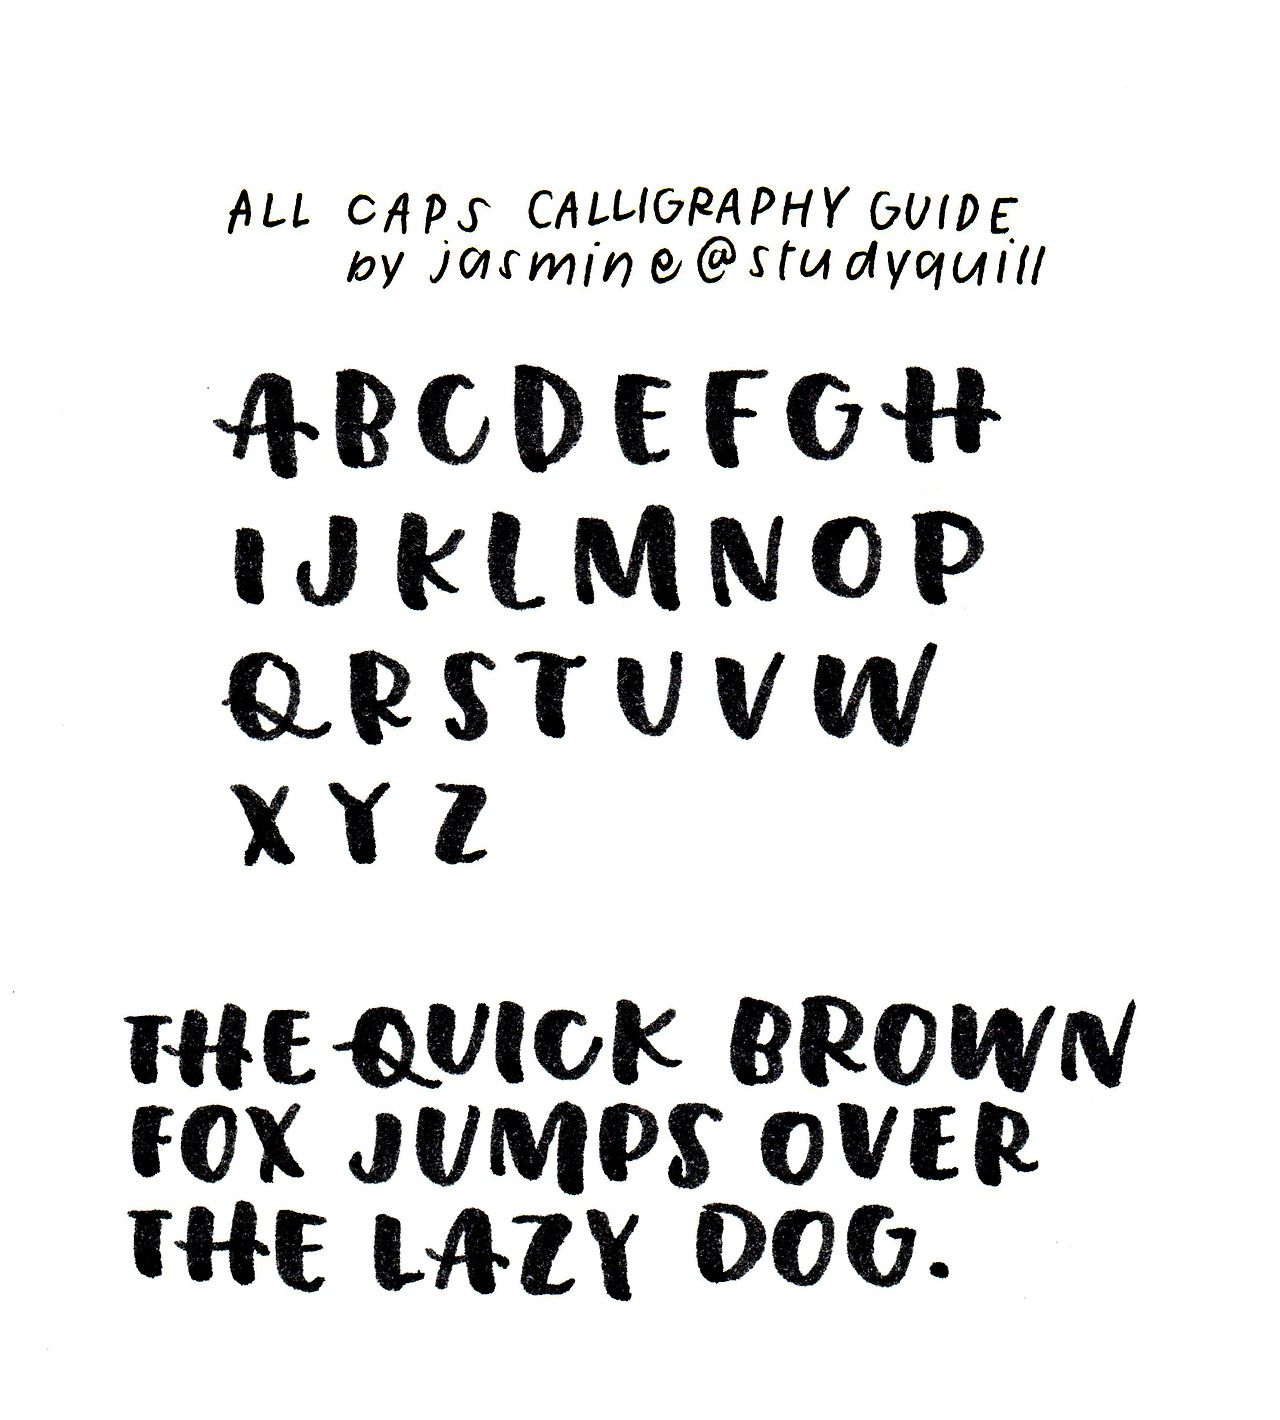 guide to all caps calligraphy, made with this brush pen